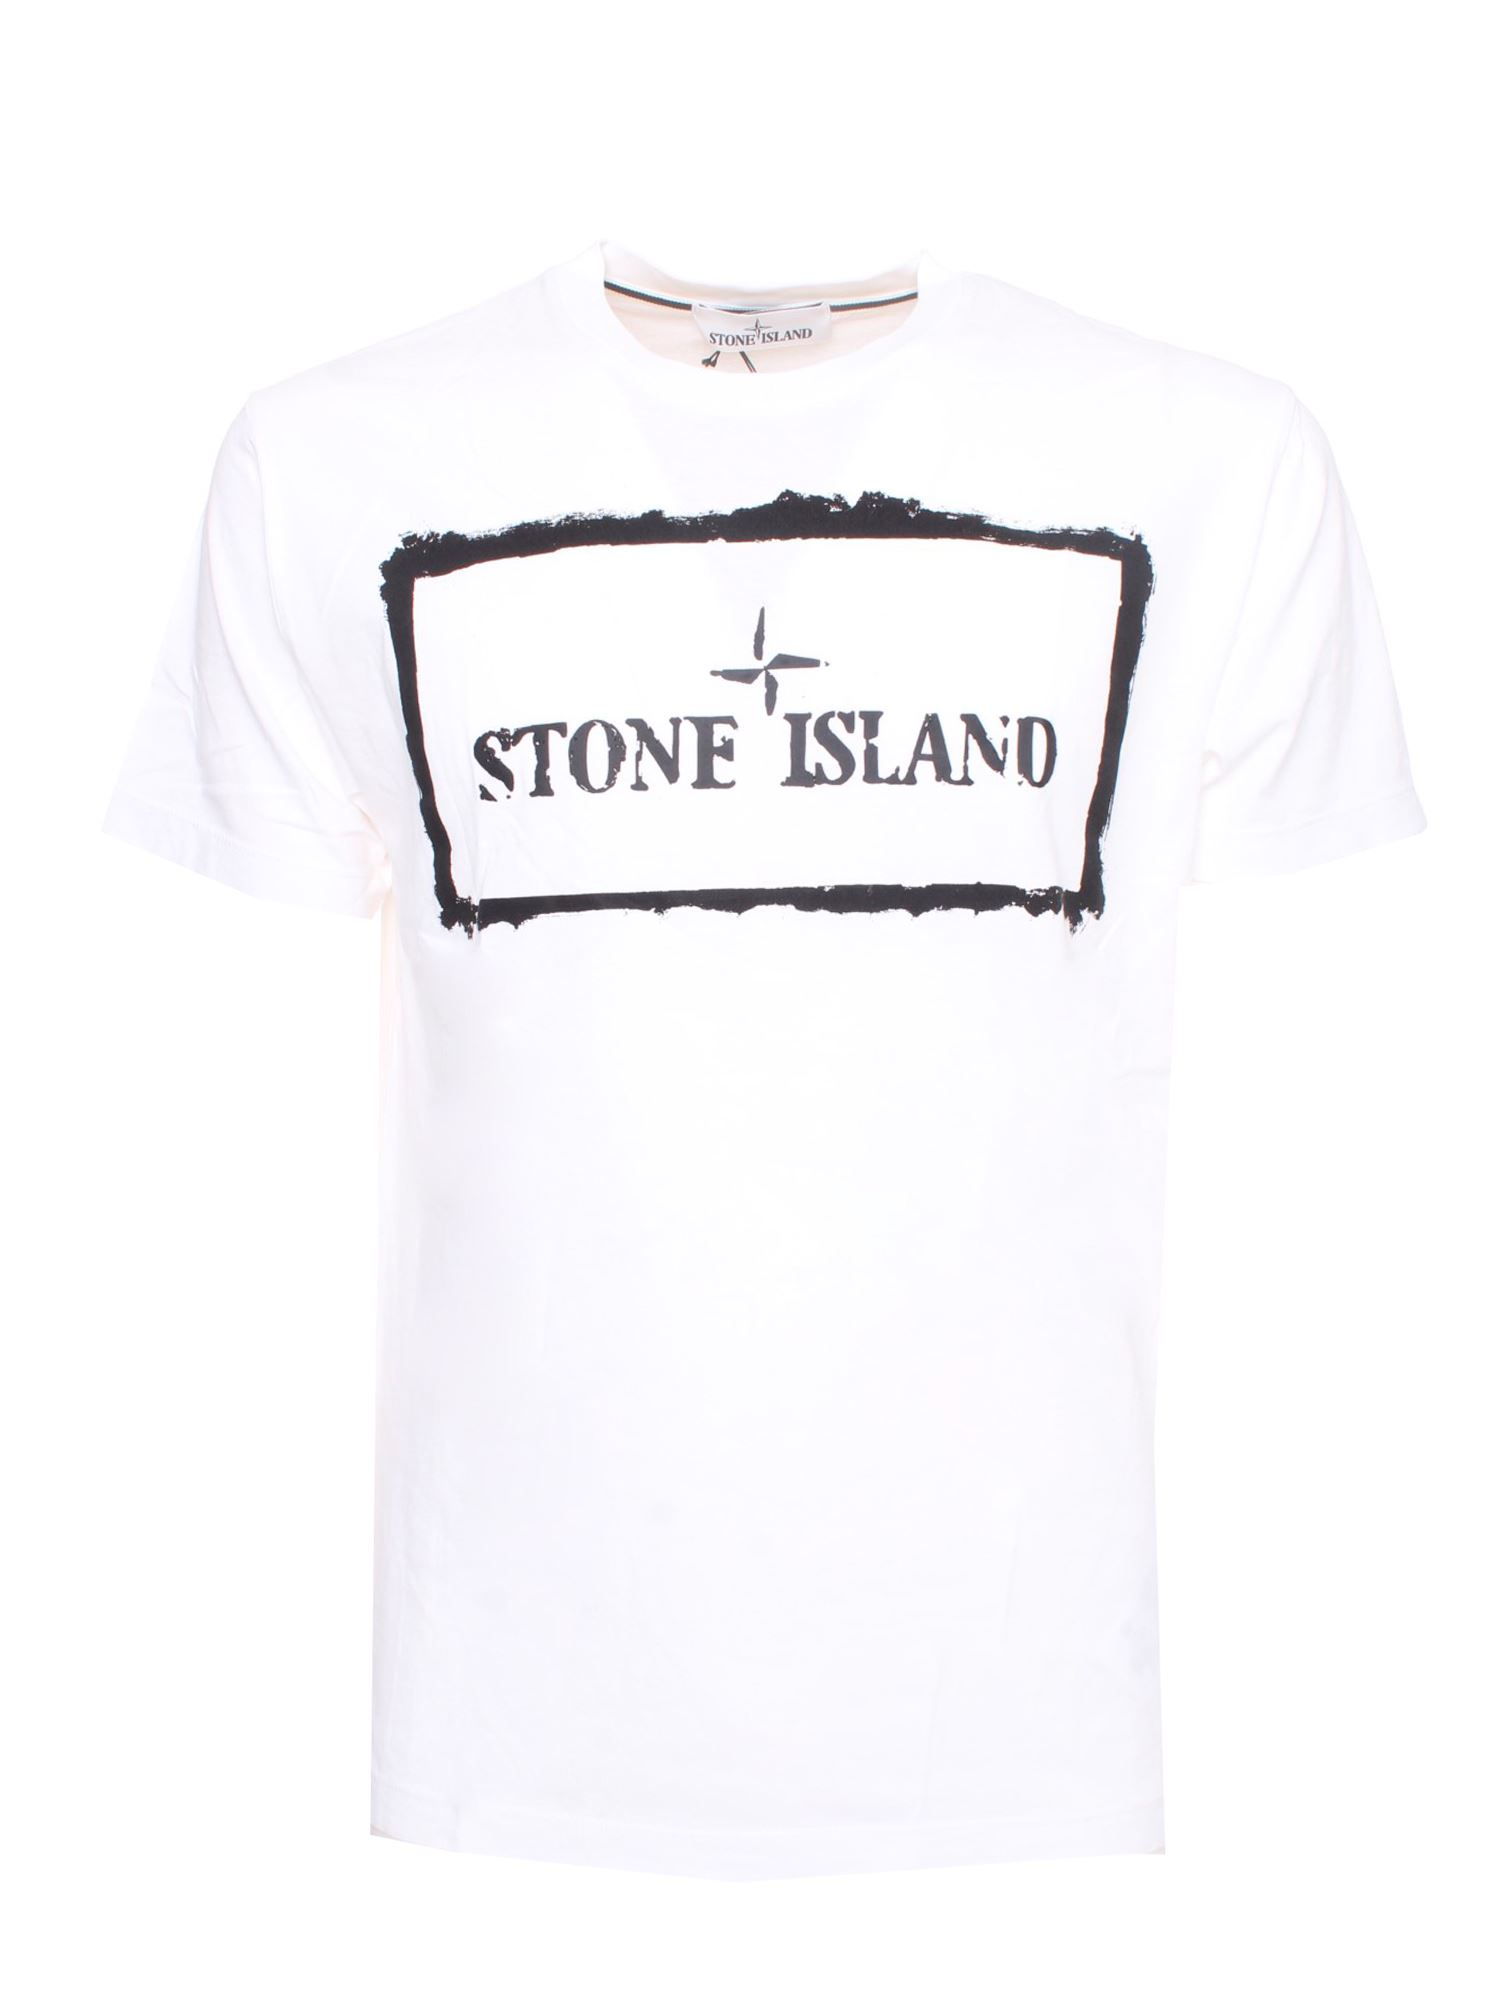 Stone Island Cottons LOGO PRINTED T-SHIRT IN BLACK AND WHITE